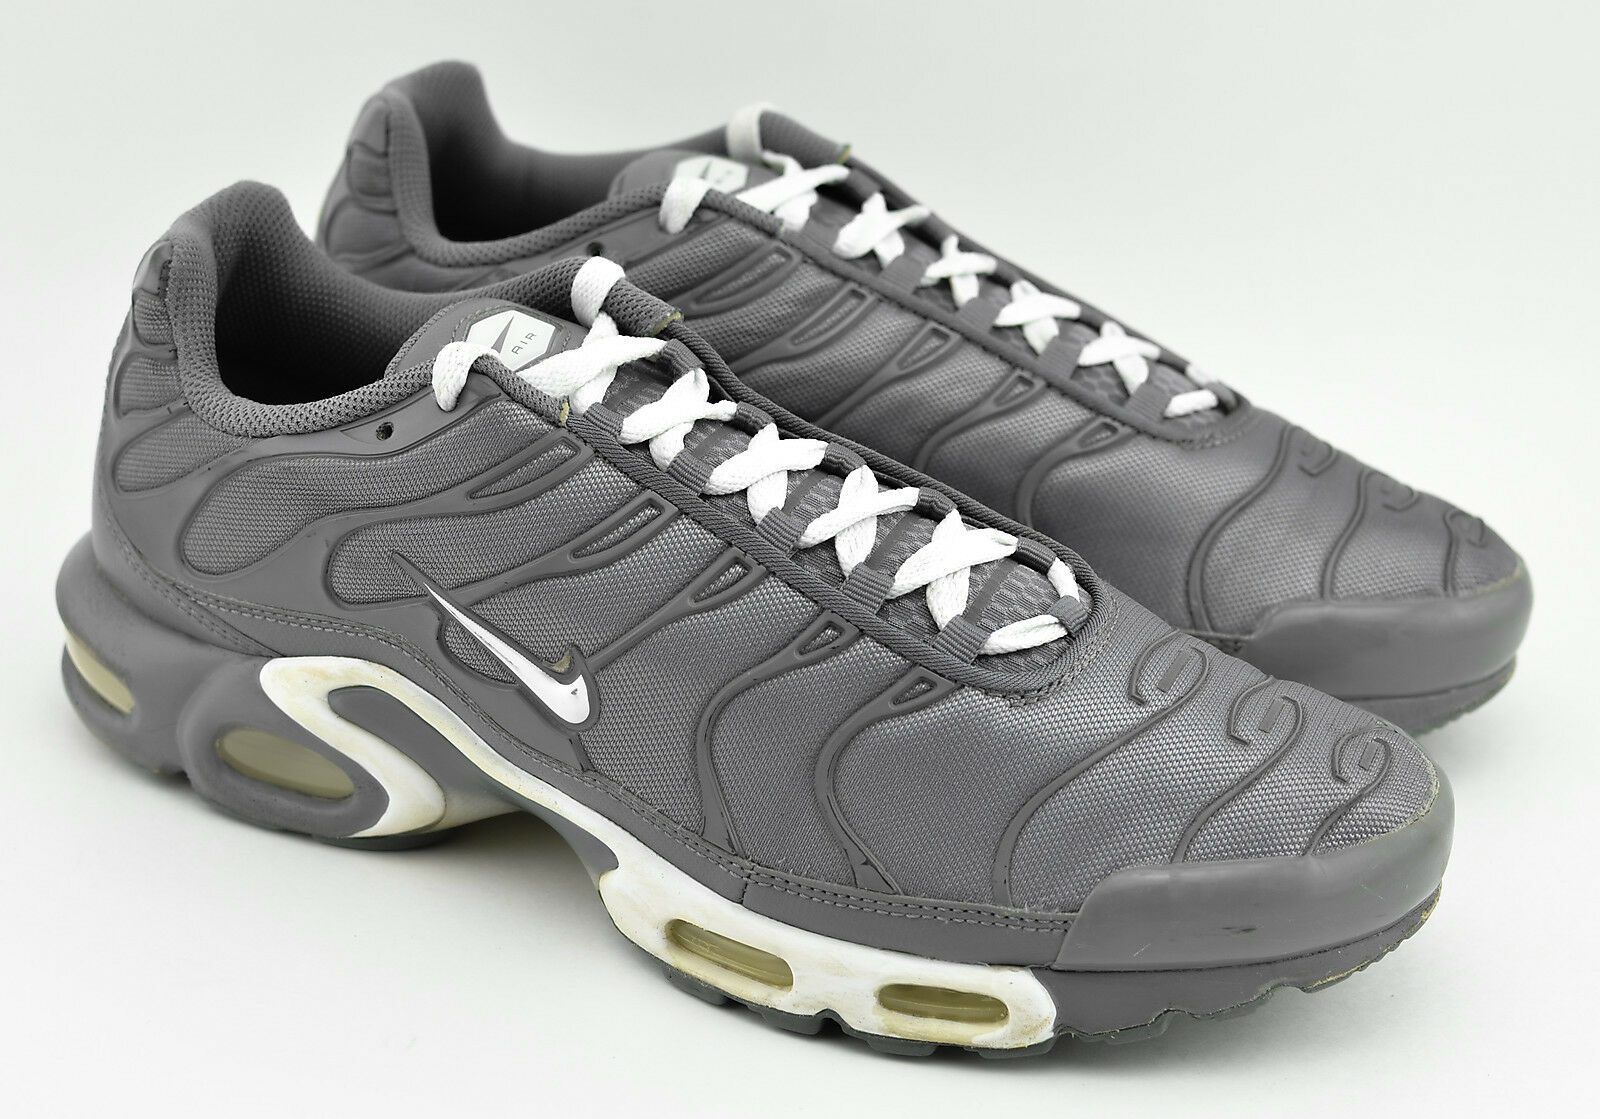 MENS NIKE AIR MAX PLUS TXT RUNNING SHOES SIZE 11 COOL GRAY WHITE 647315 012 Great discount